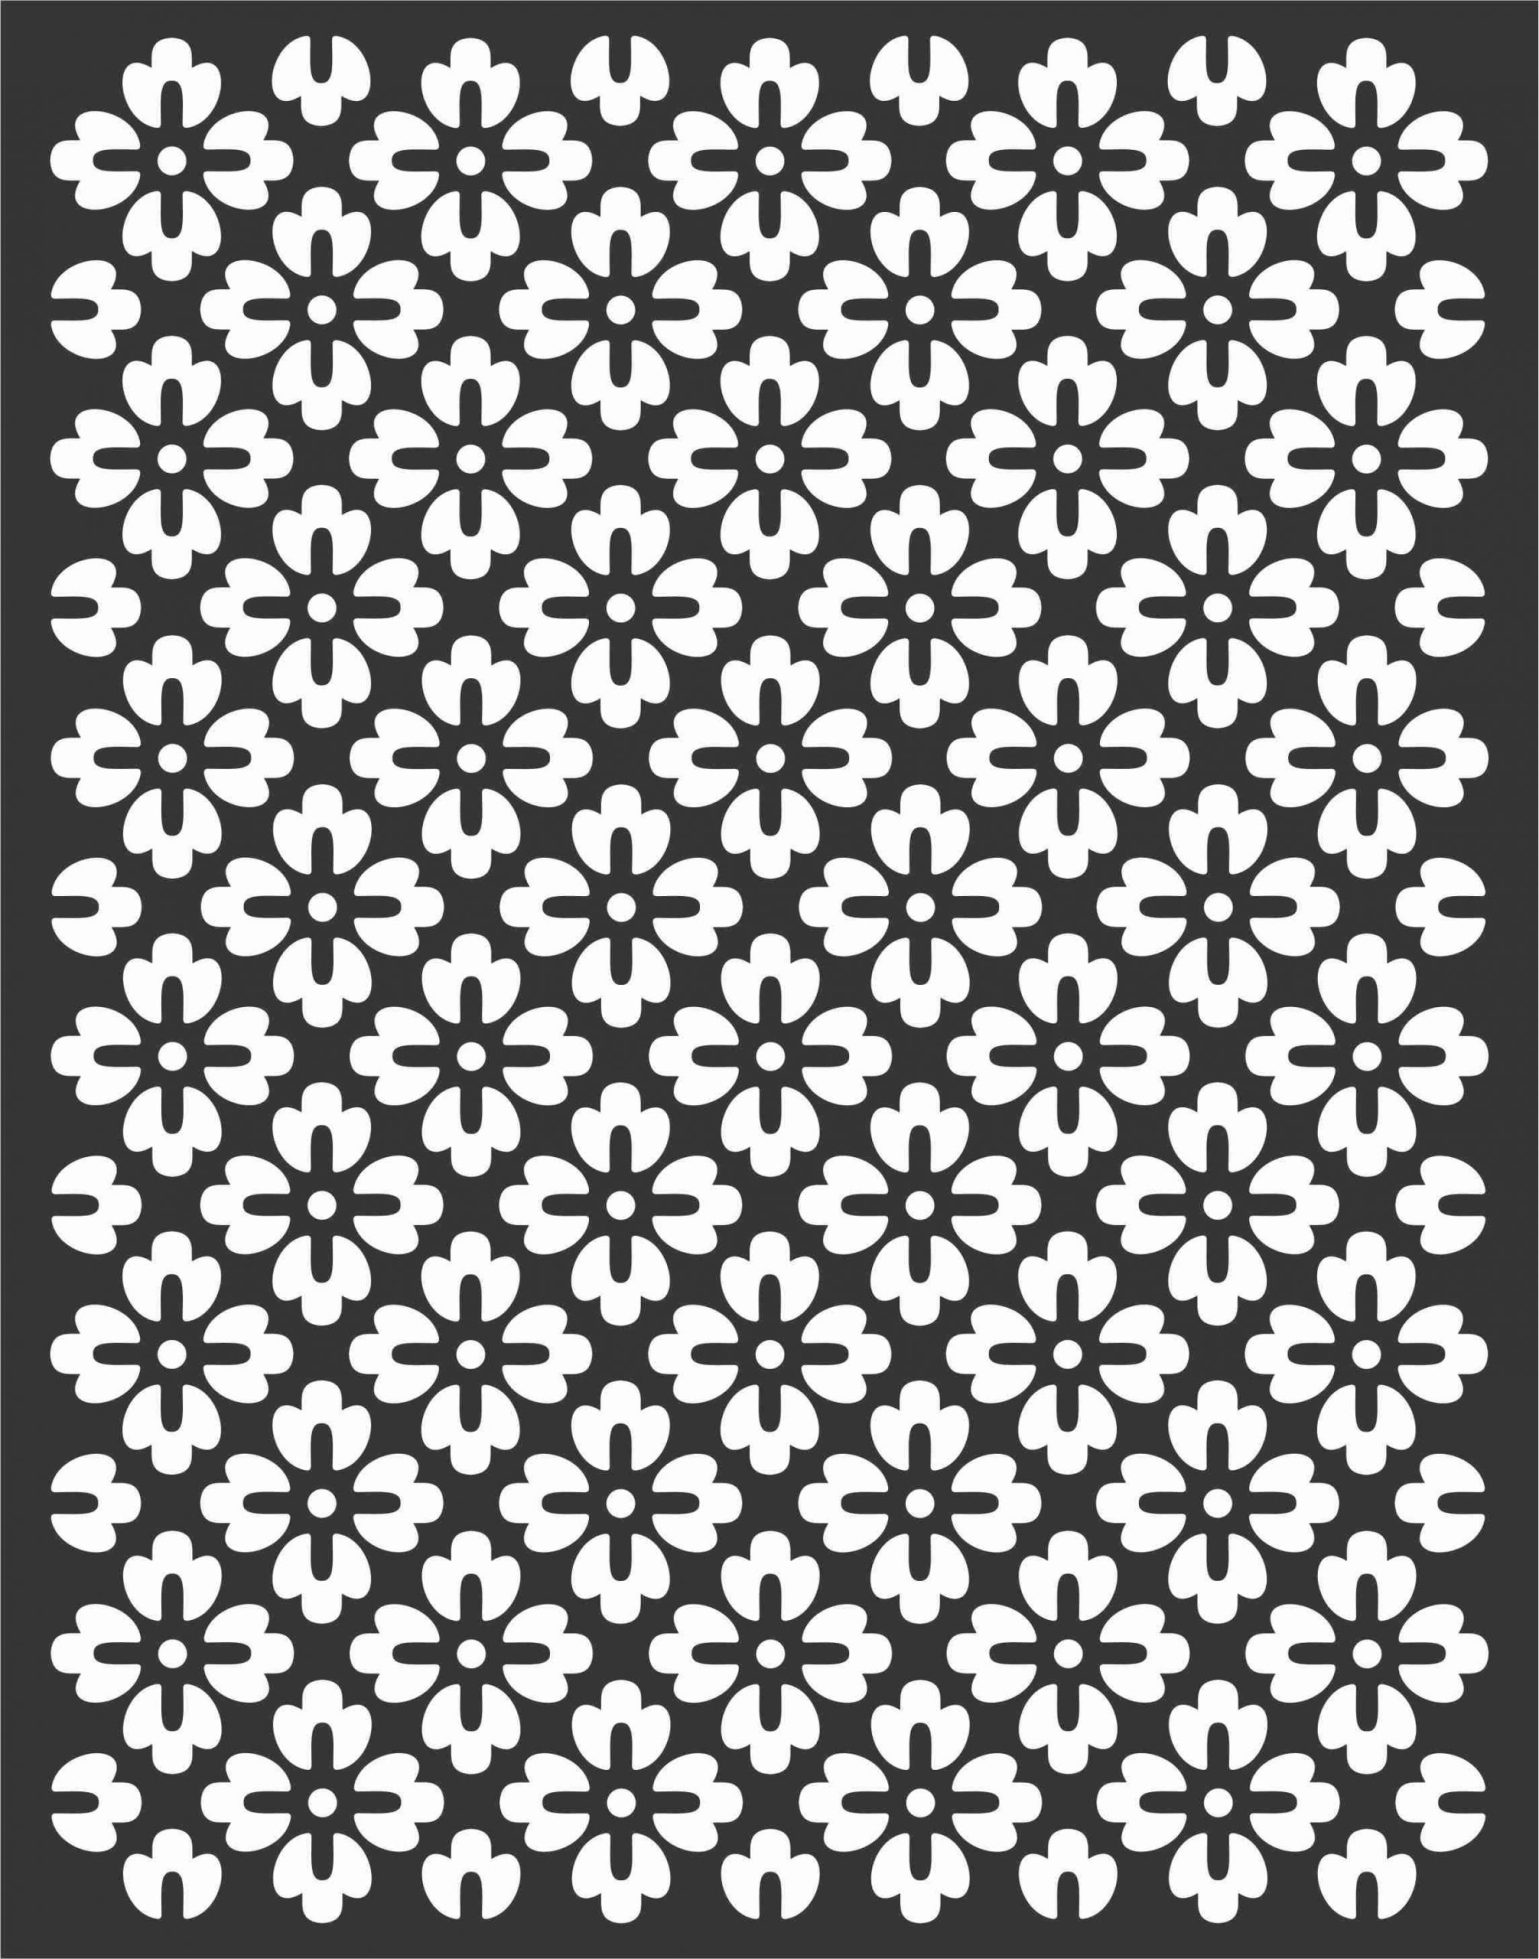 Floral Screen Patterns Design 68 Free DXF File